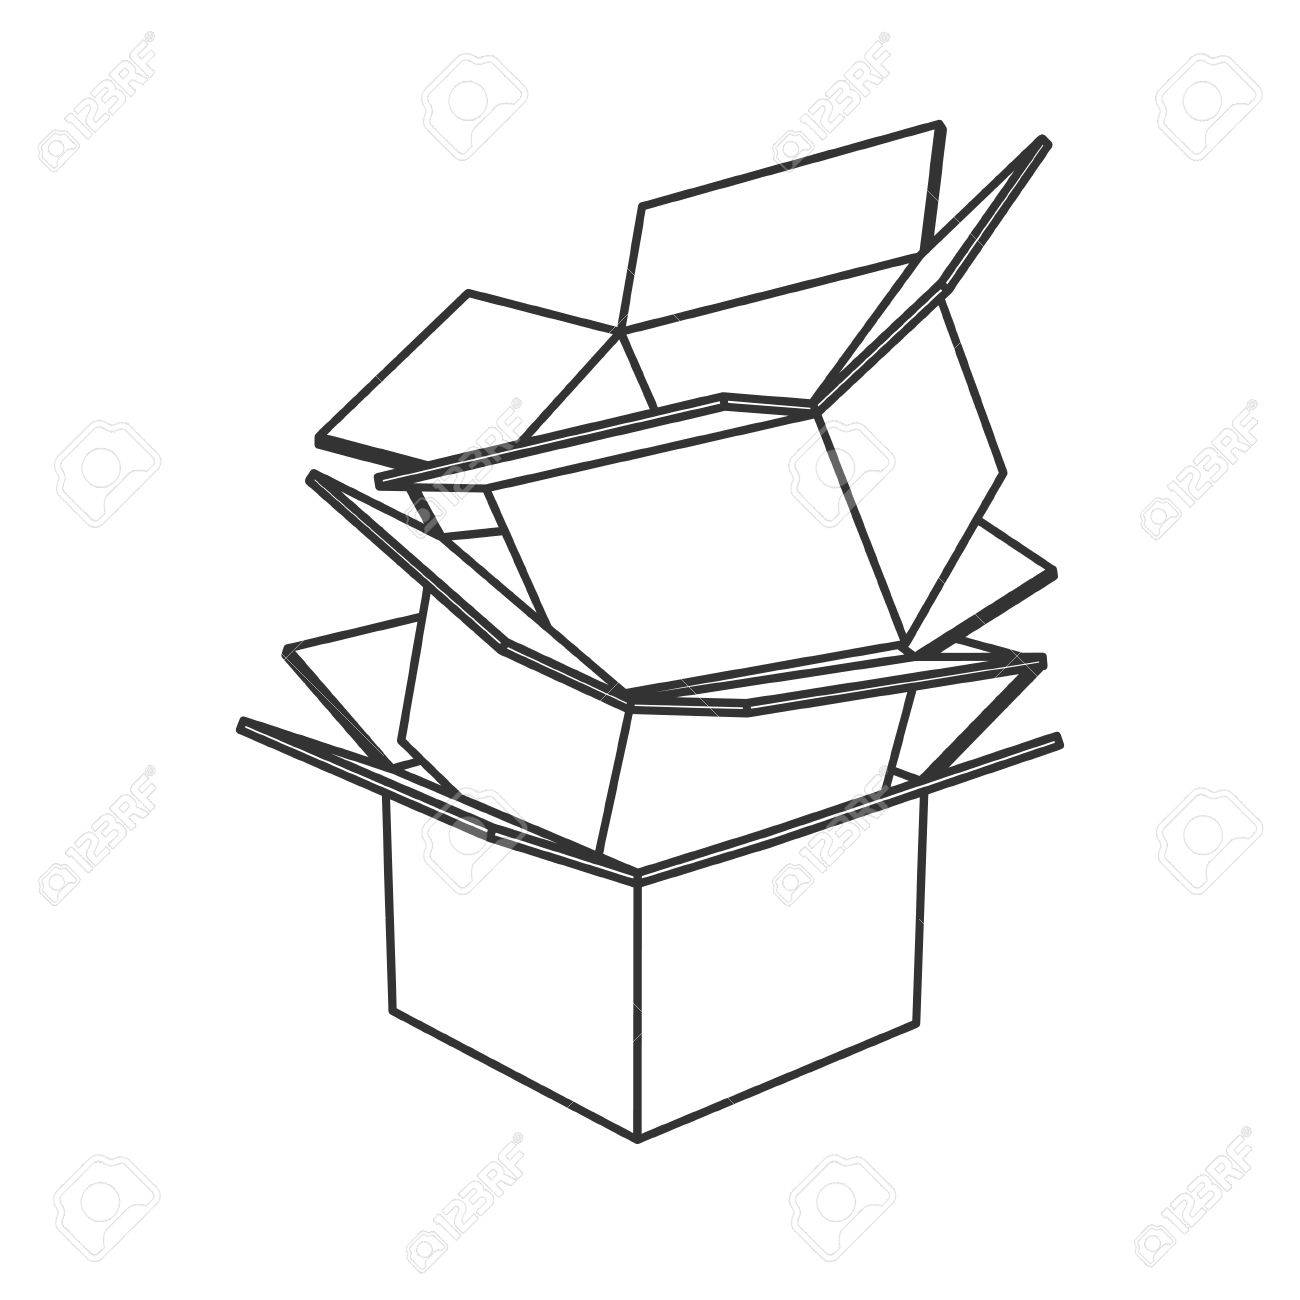 71 Obvious Cardboard Boxes How To Draw.